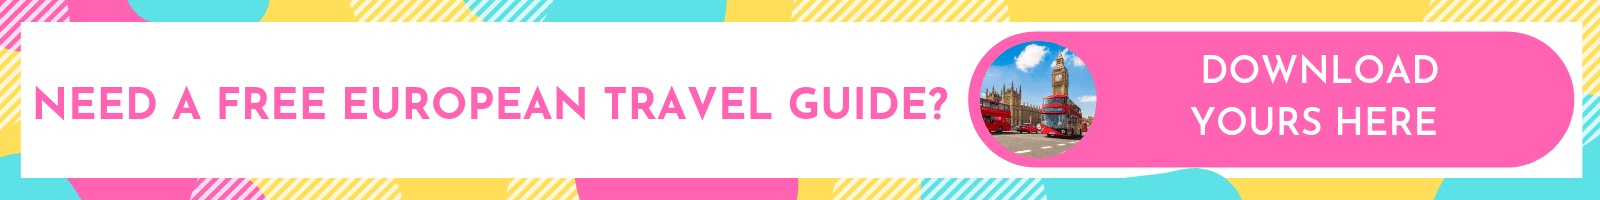 Free travel guide to Rome, Paris, London, Zurich and Amsterdam